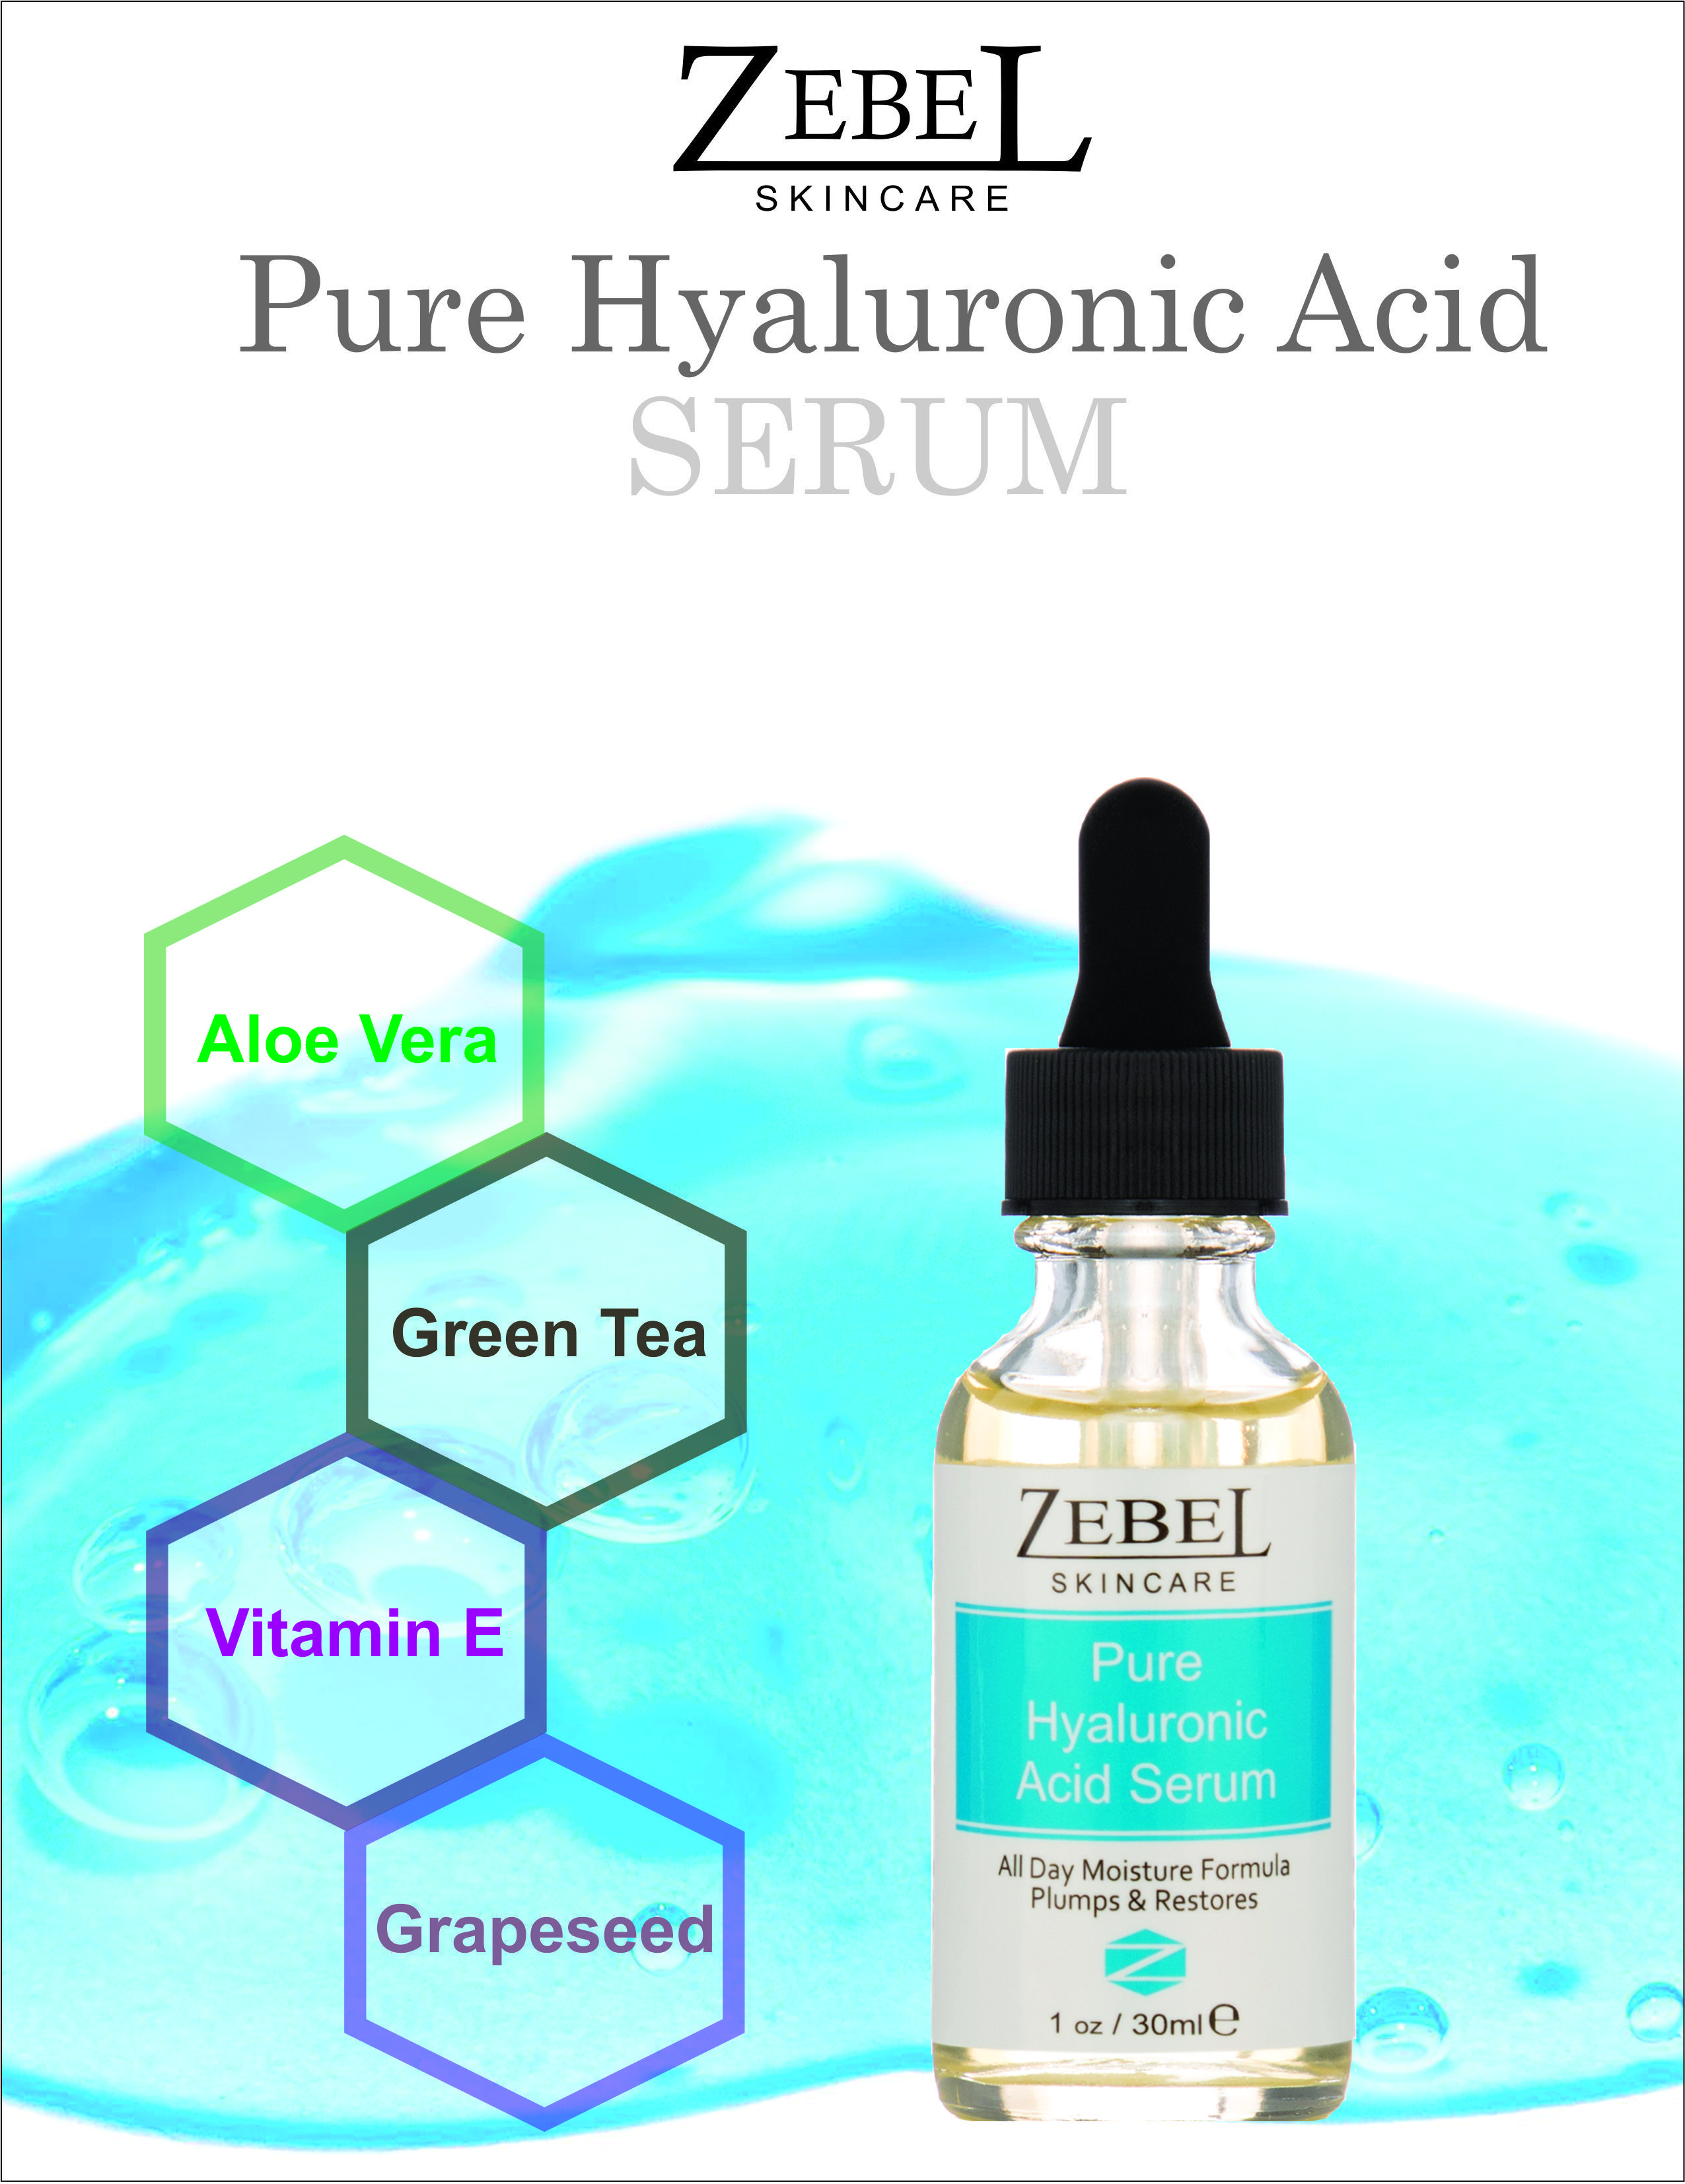 Pure hyaluronic acid serum key ingredients aloe vera gel green